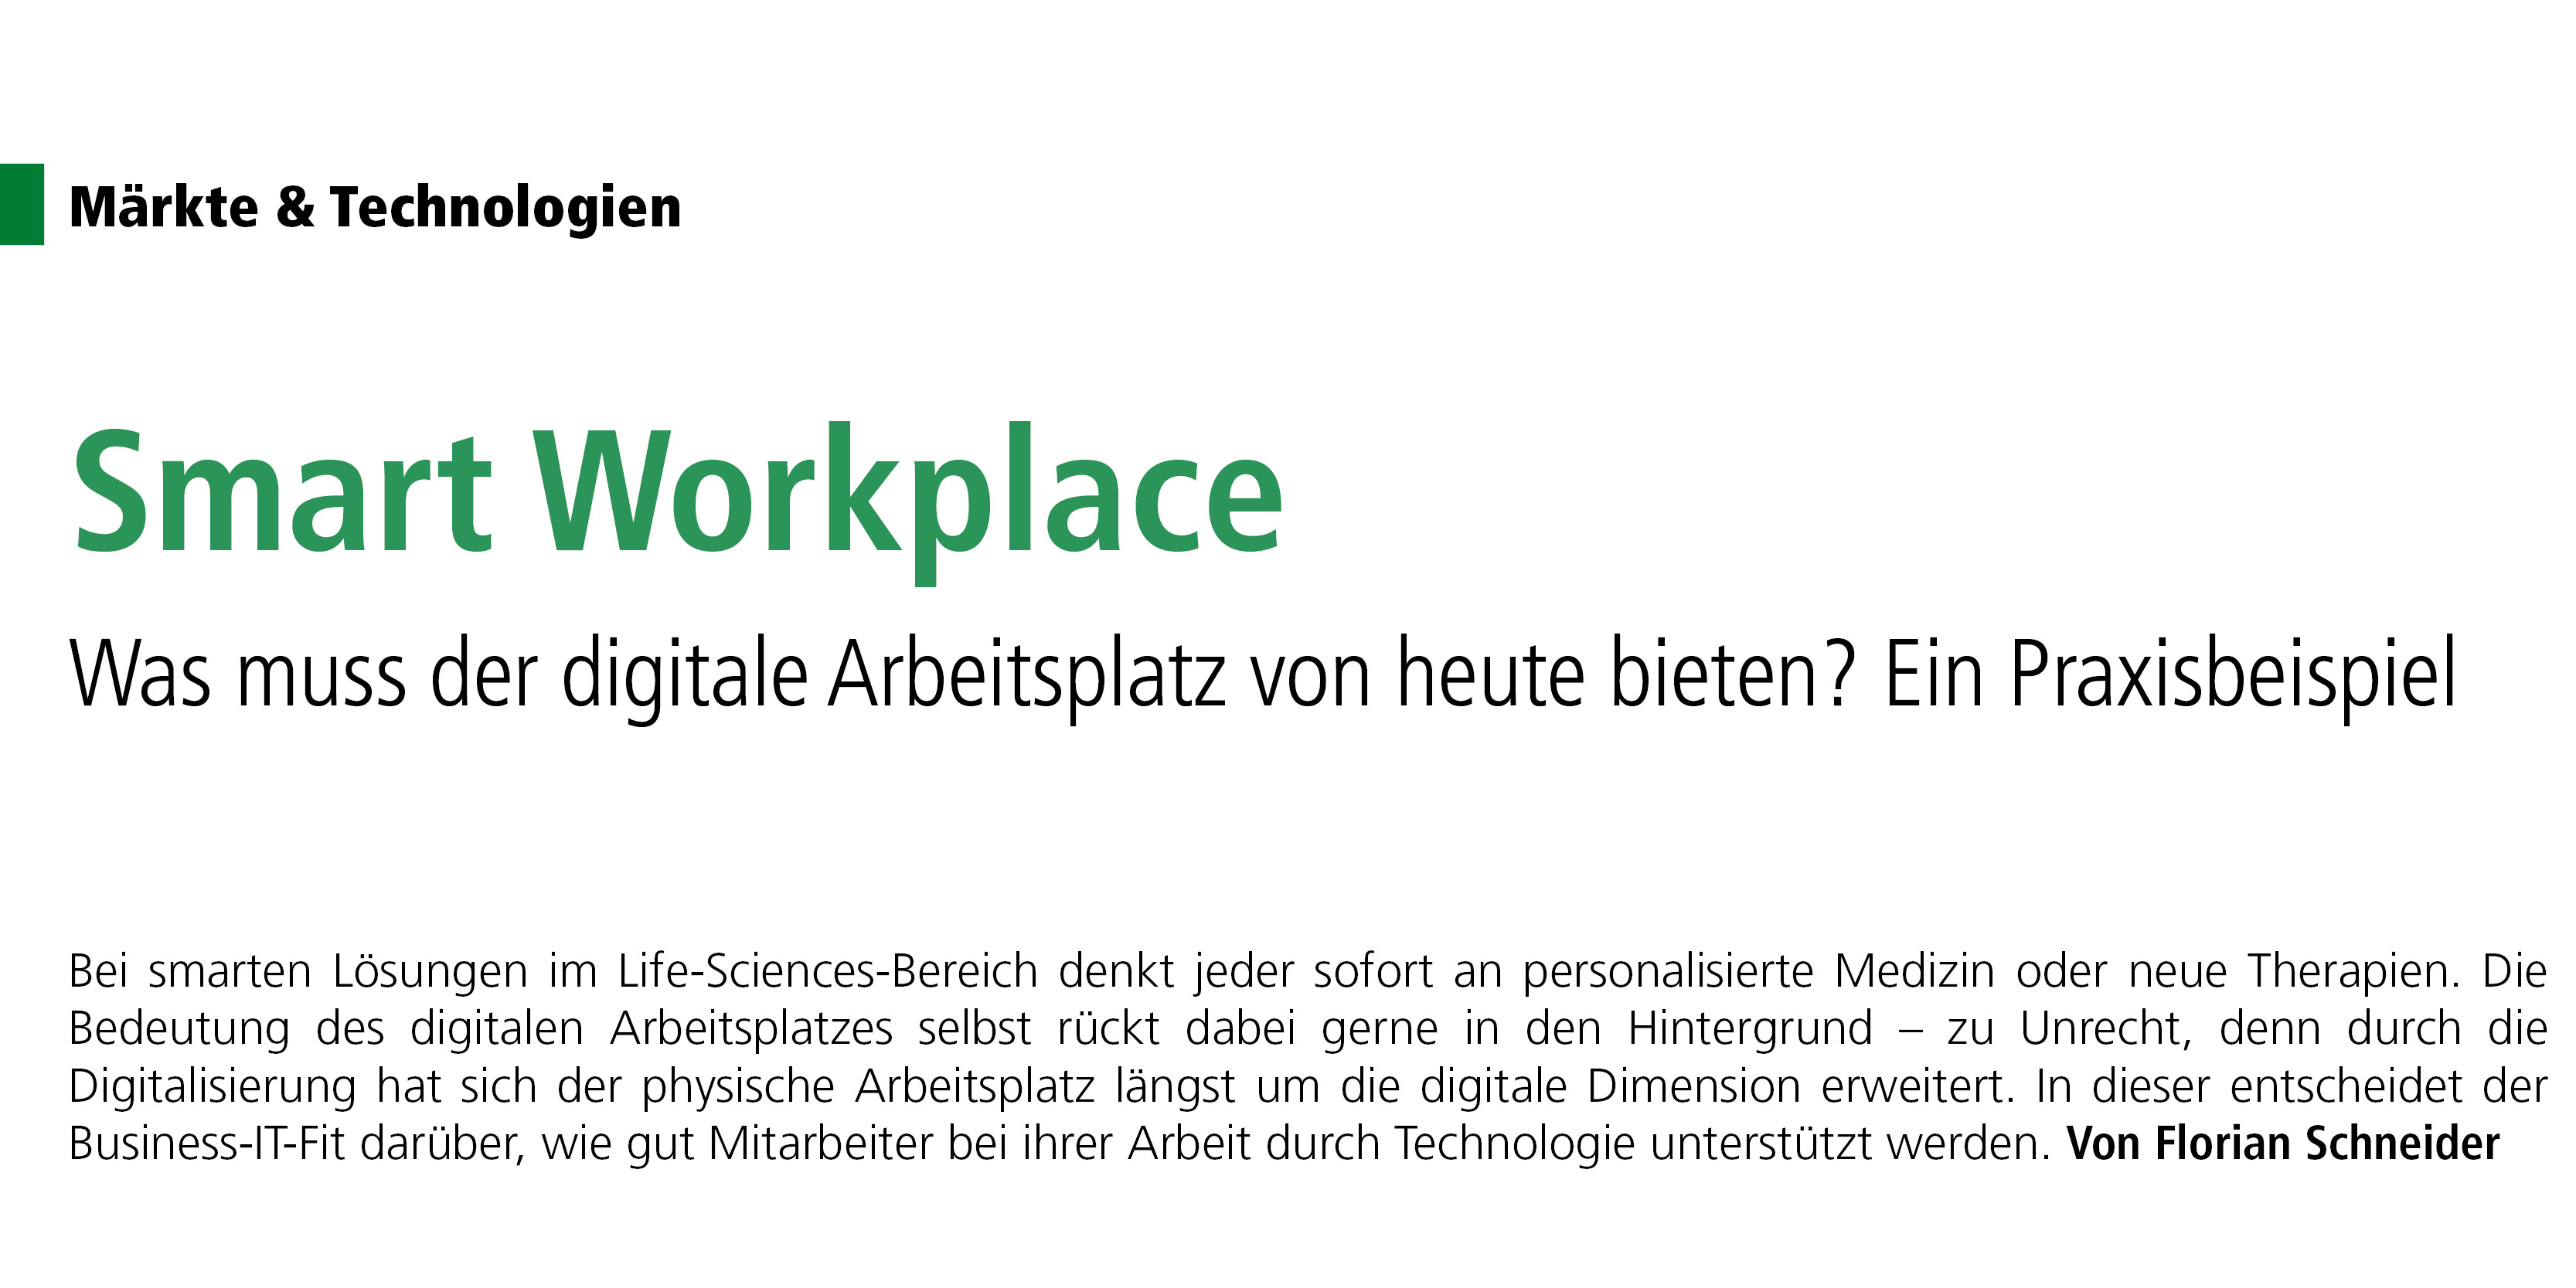 The Smart Workplace at Rentschler Biopharma